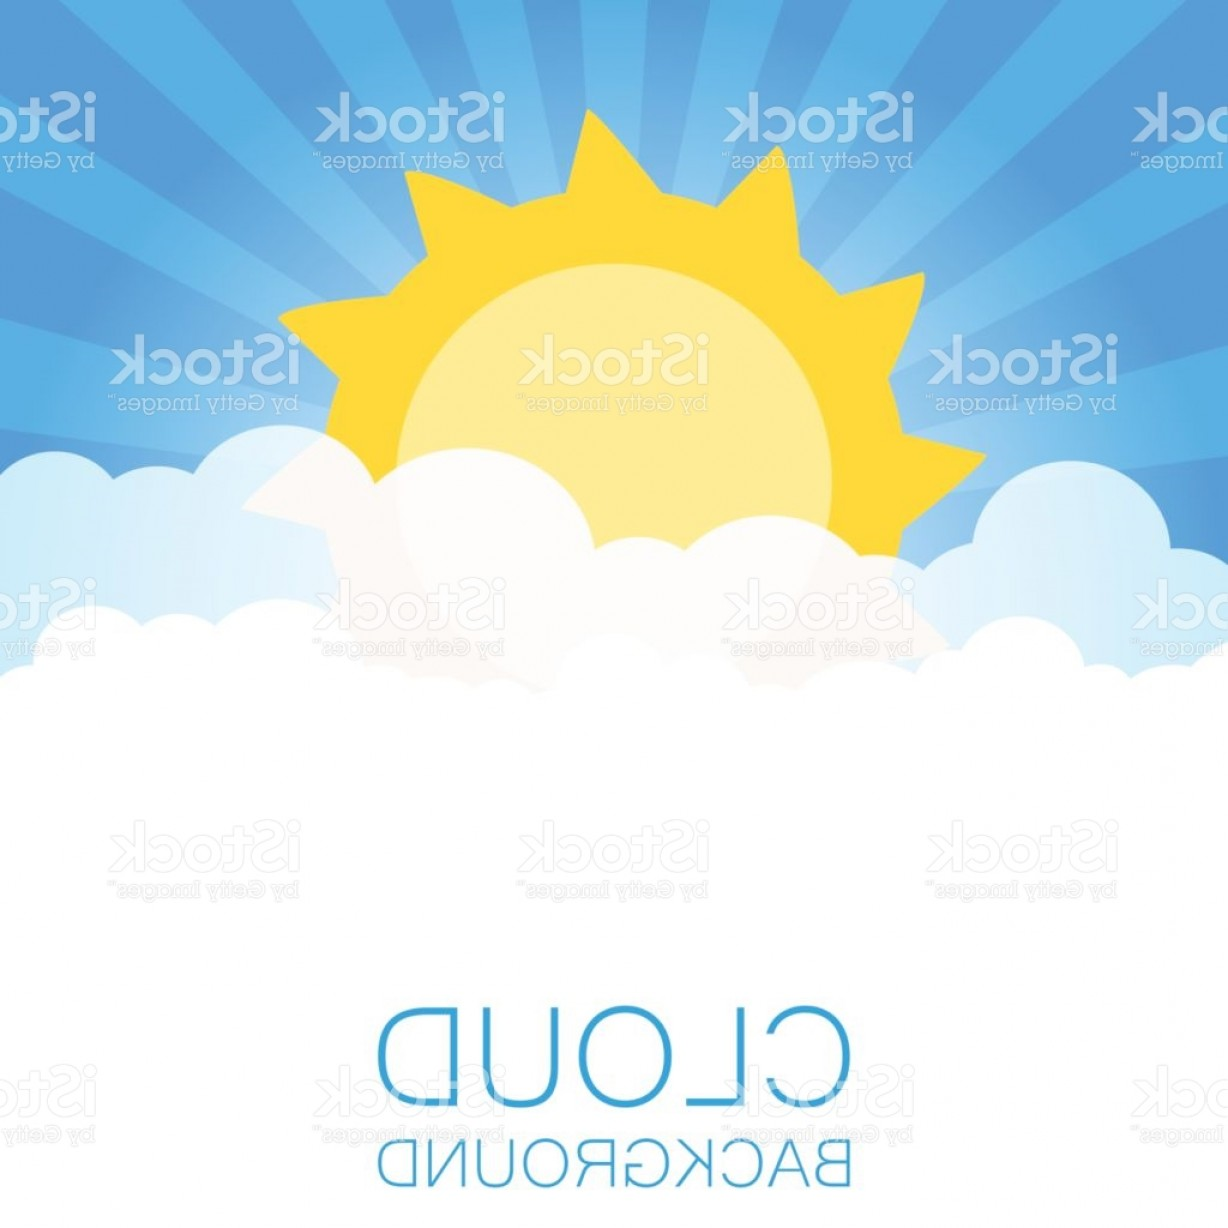 Blue Background Vector Cartoon Sun: Clouds In The Sky With Sun Rays Flat Vector Illustration In Cartoon Style Blue Gm